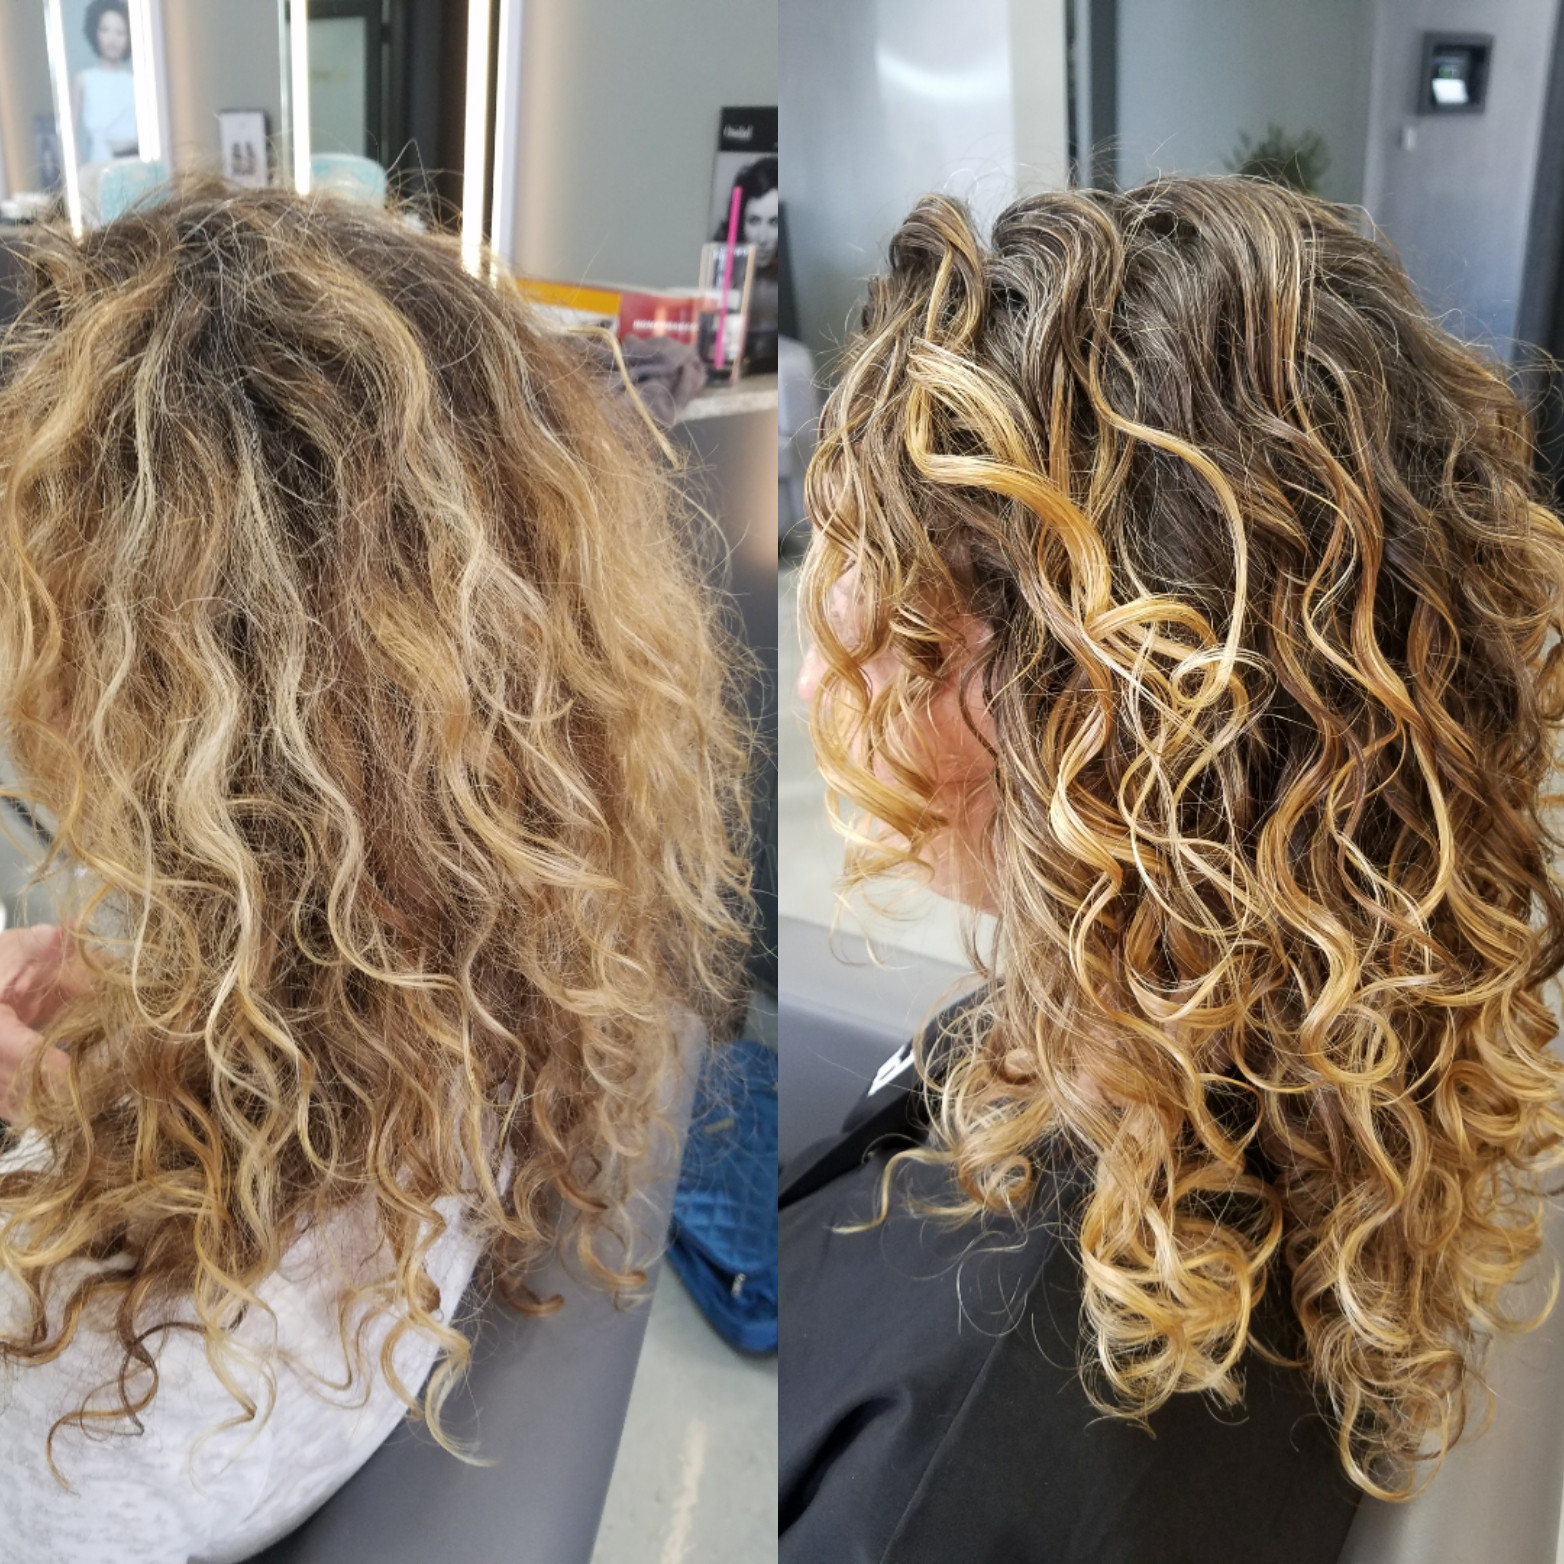 Ouidad Haircut | Organic Salon Curly Hair Portland Or Haircraft By Jo